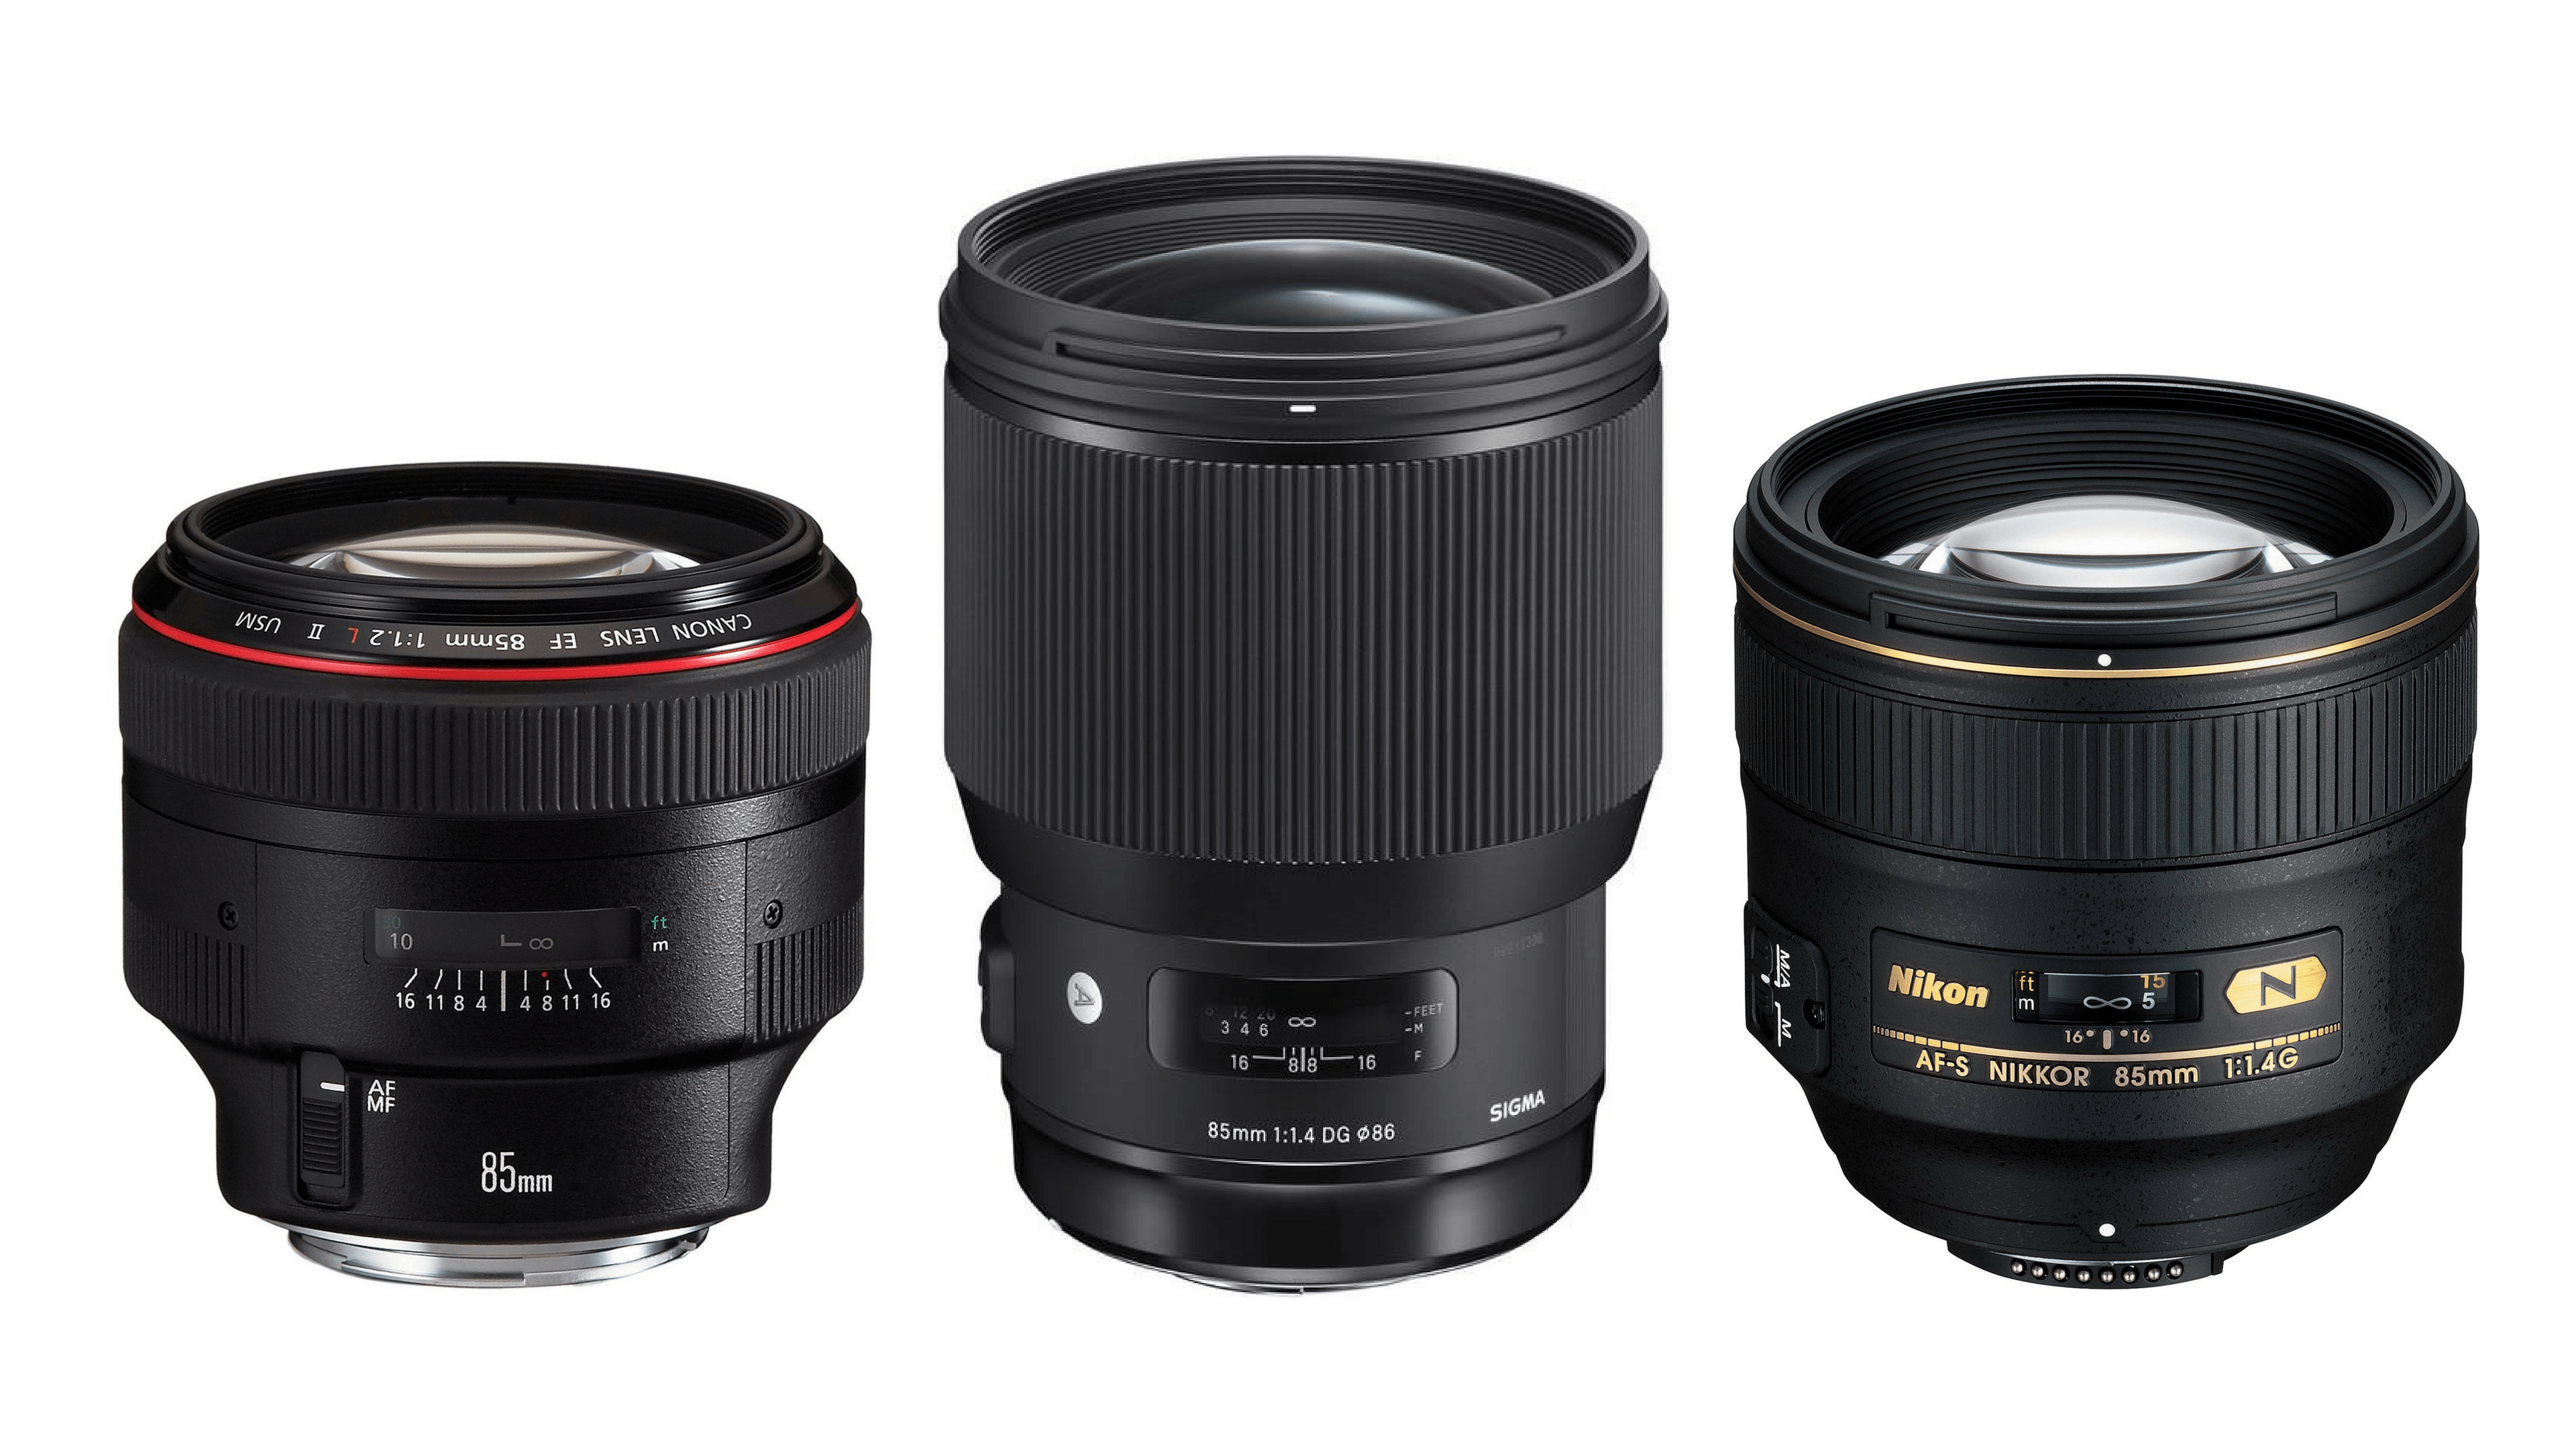 Relative size difference. The Canon 85mm f/1.2L II, left. The Nikon AF-S Nikkor 85mm f/1.4G, right. Sigma 85mm 85mm f/1.4 | Art lens, center